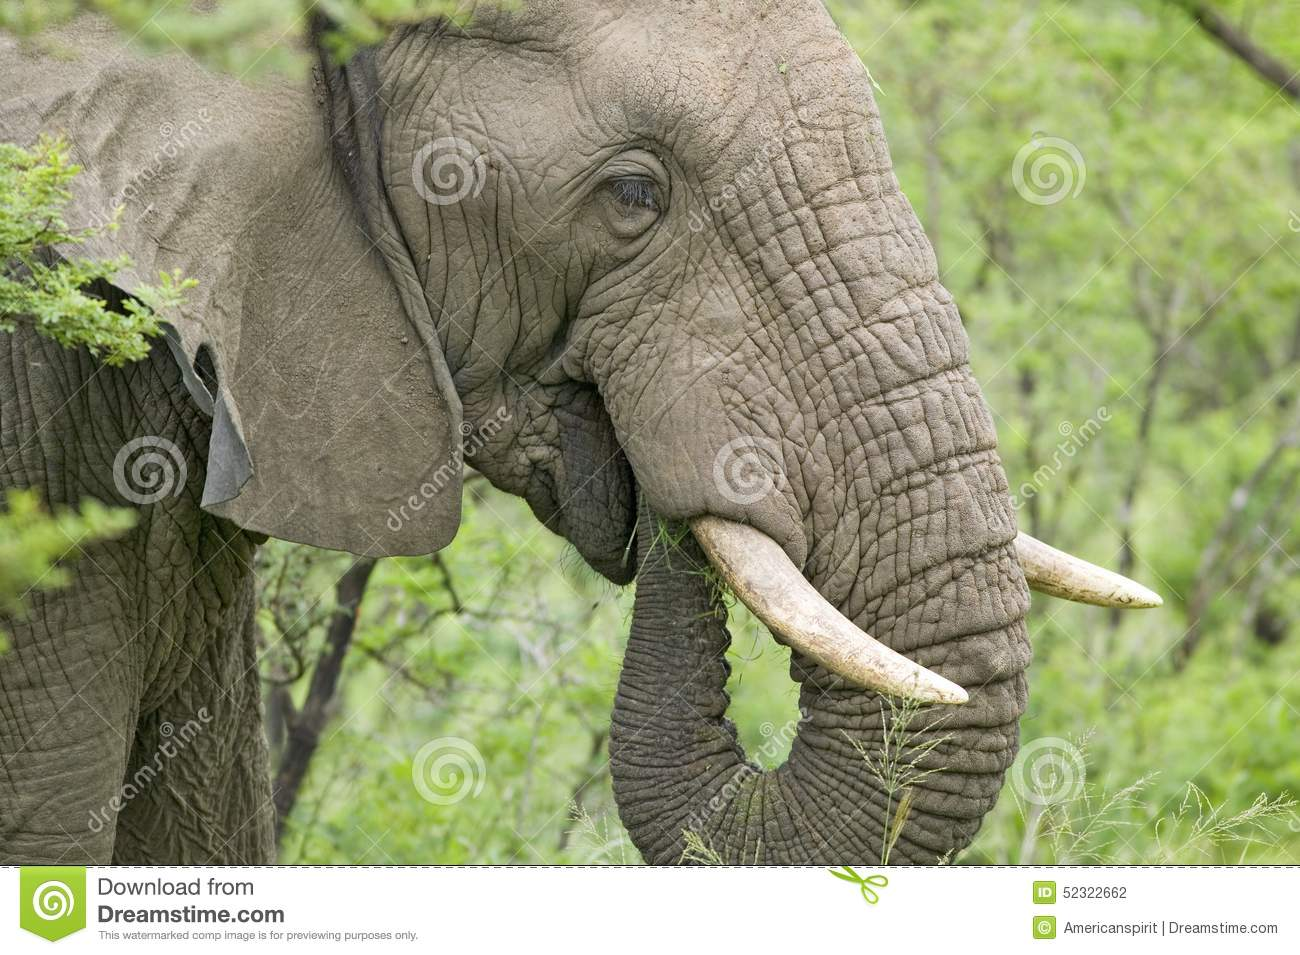 Male elephant with Ivory tusks eating brush in Umfolozi Game Reserve, South Africa, established in 1897